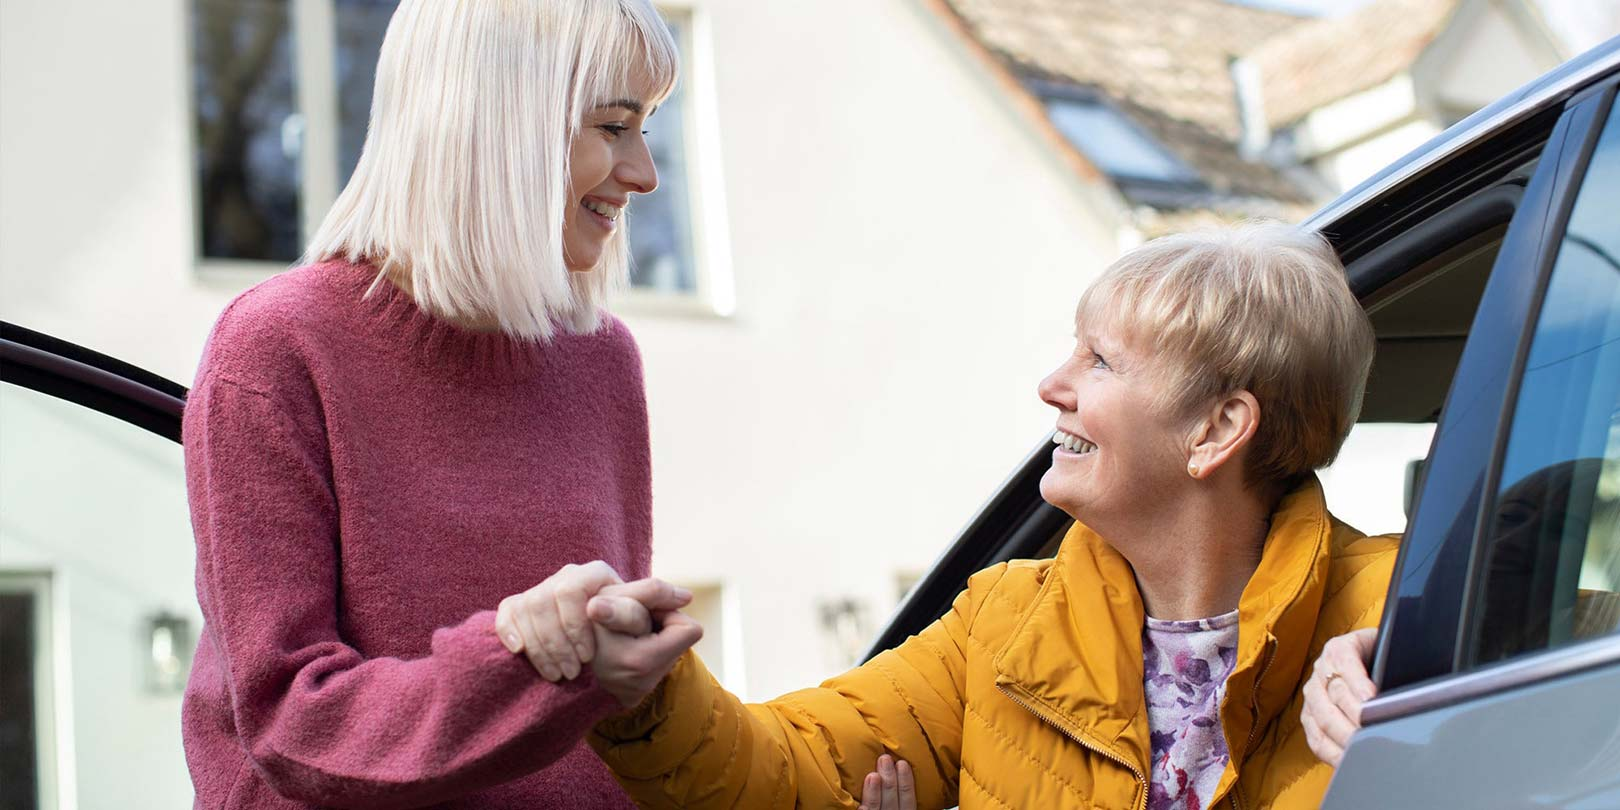 7 tips for taking care of your loved one after a hospital discharge